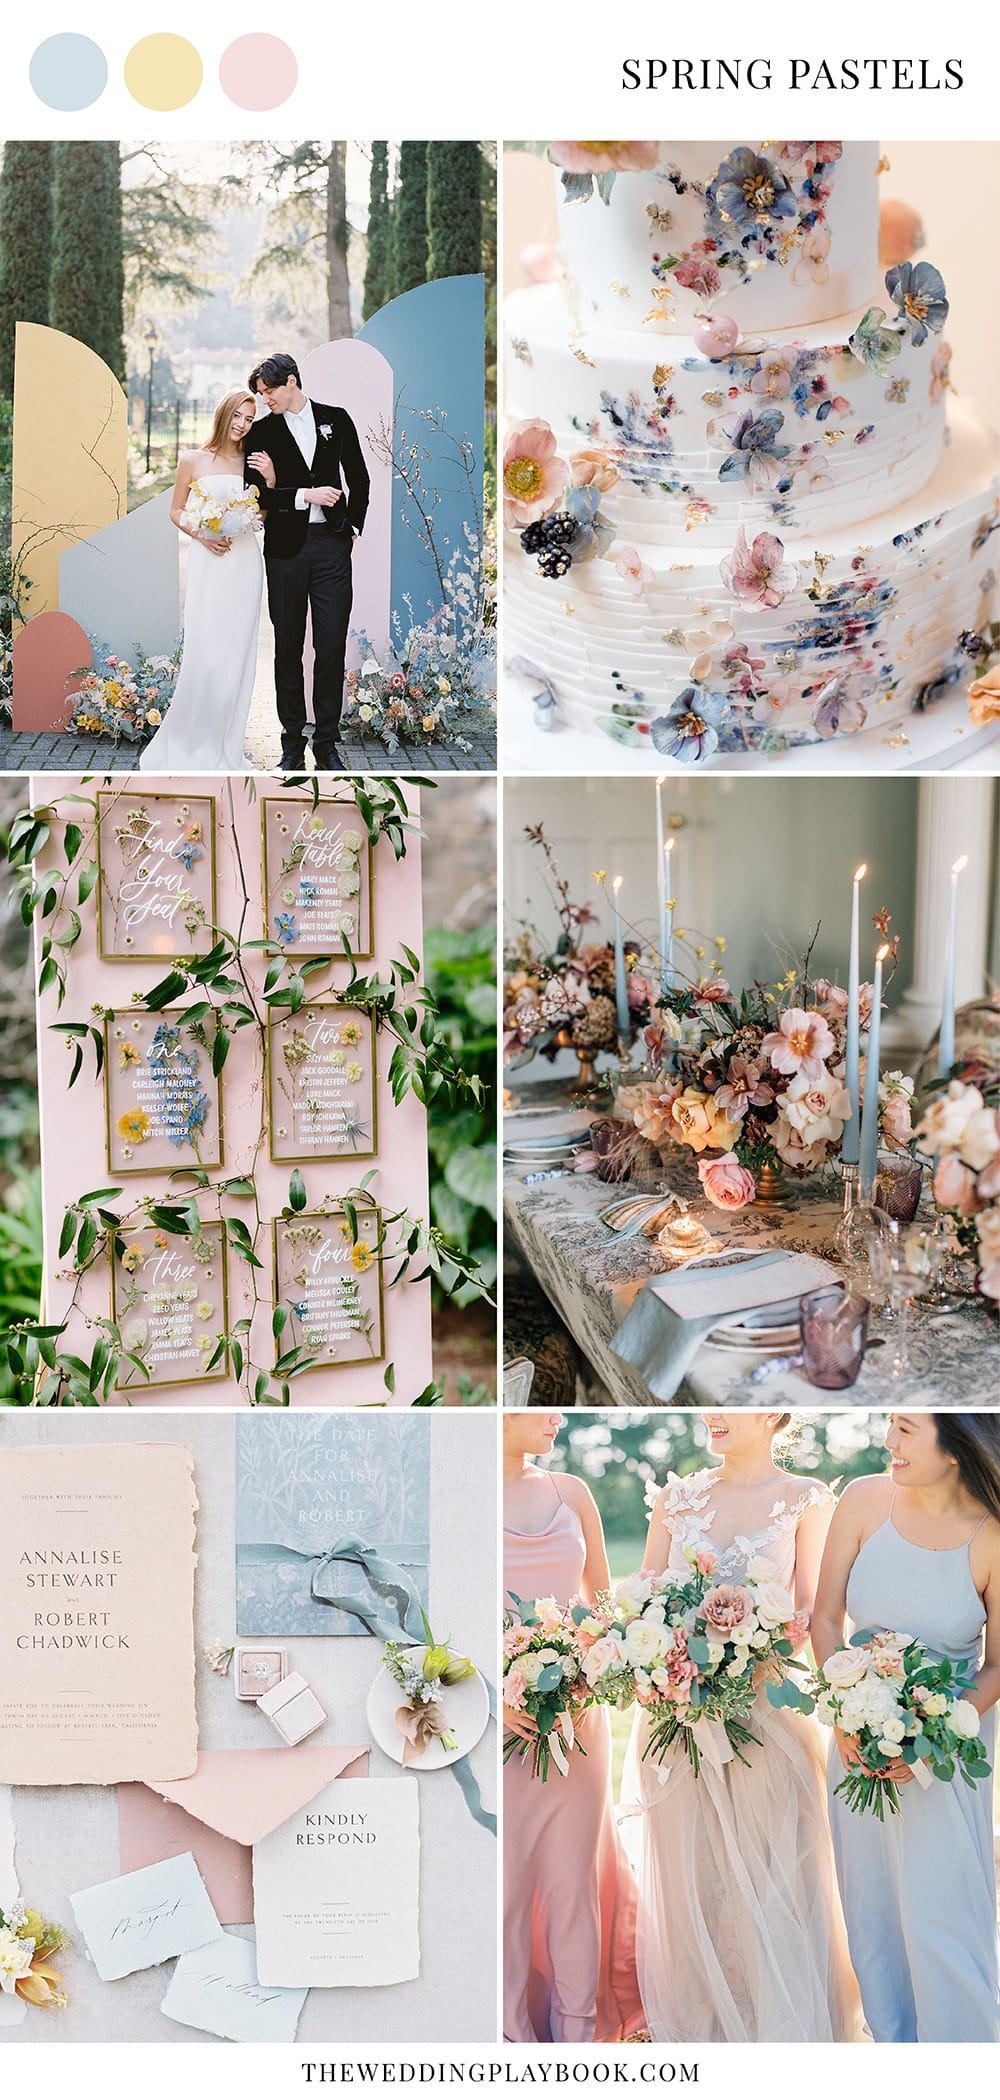 Romantic spring pastel wedding ideas in pale blue, blush pink and butter yellow